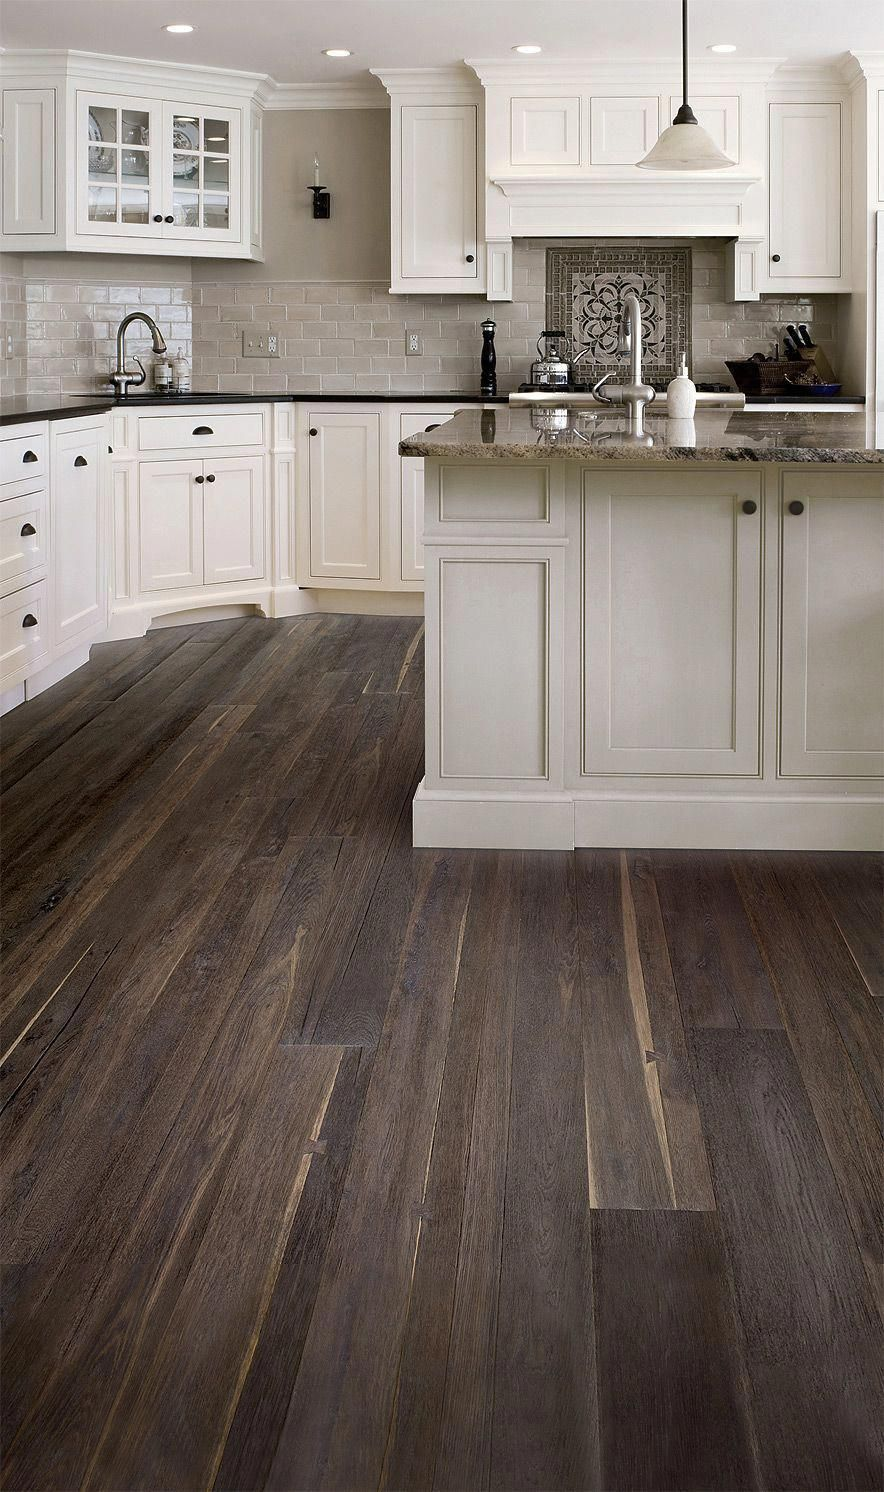 Laminate counter tops are frequently considered the most